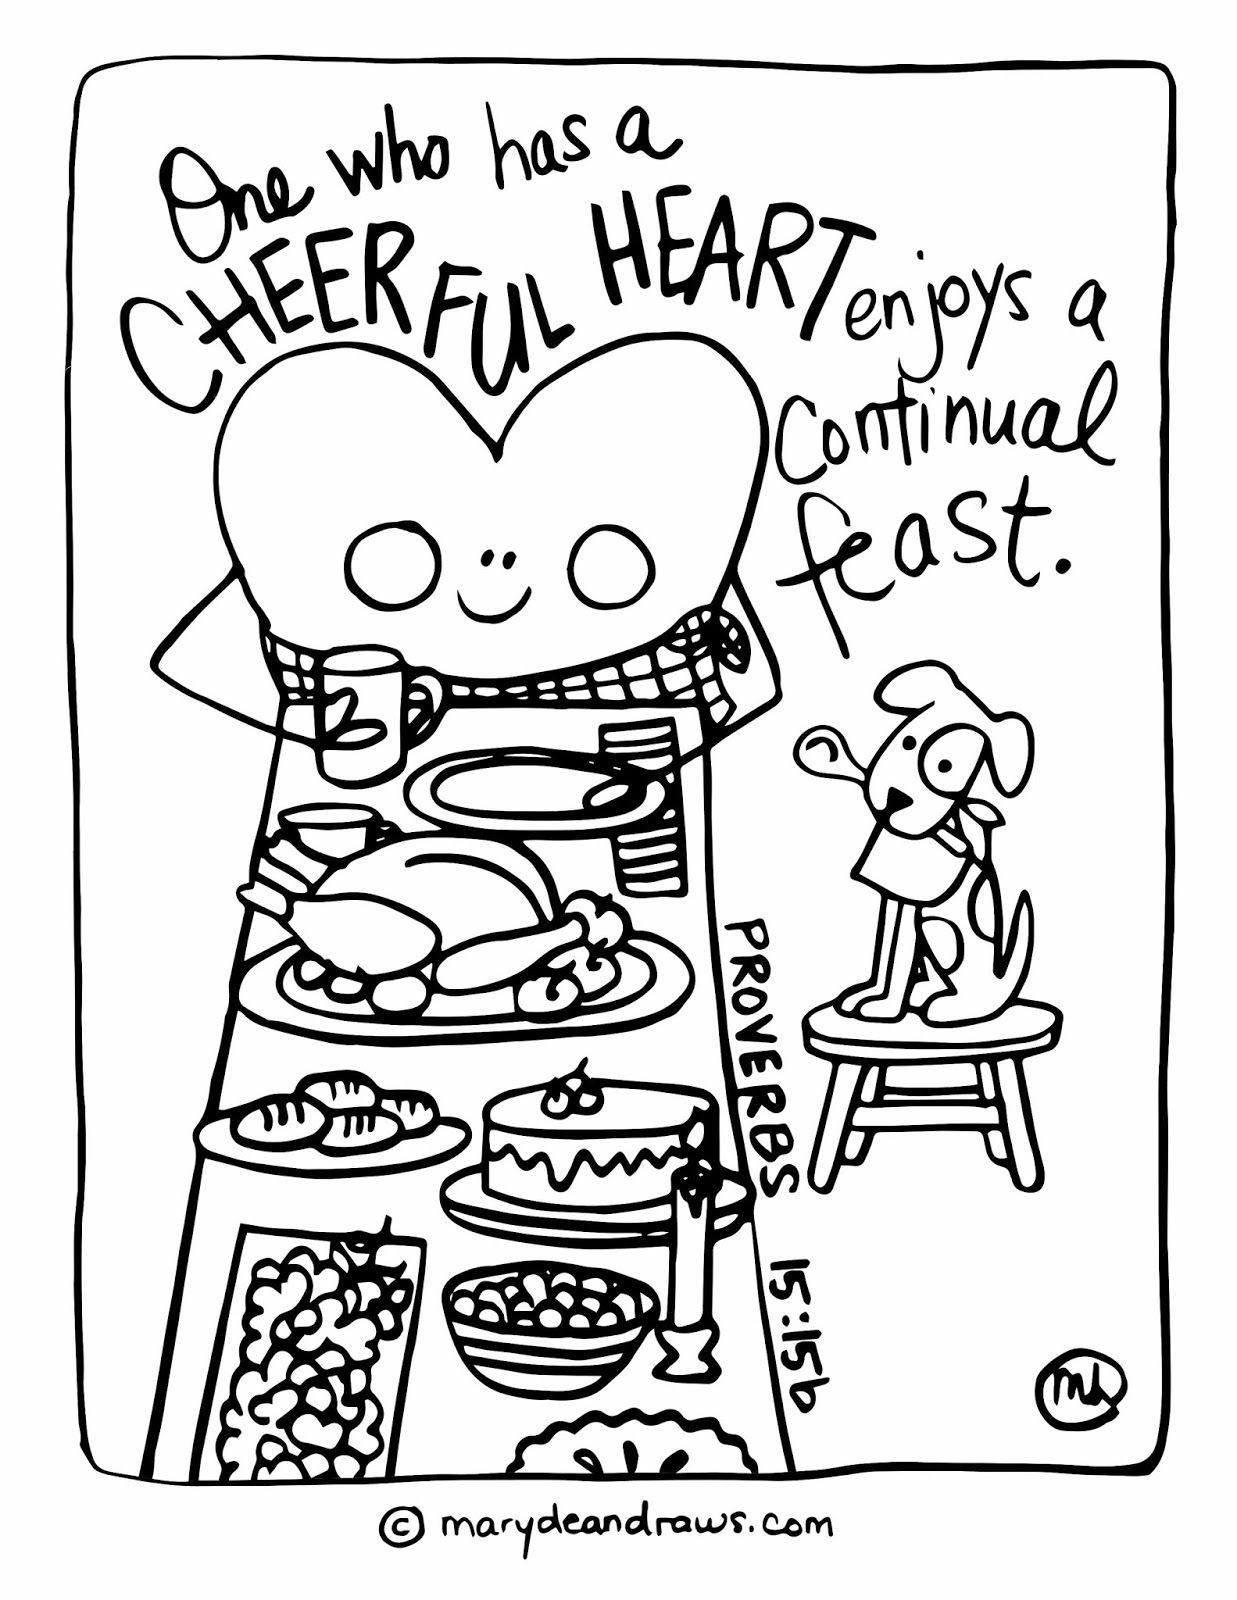 Coloring pages with bible verses - Proverbs 15 15 Scripture Bible Verse Coloring Page Cheerful Heart